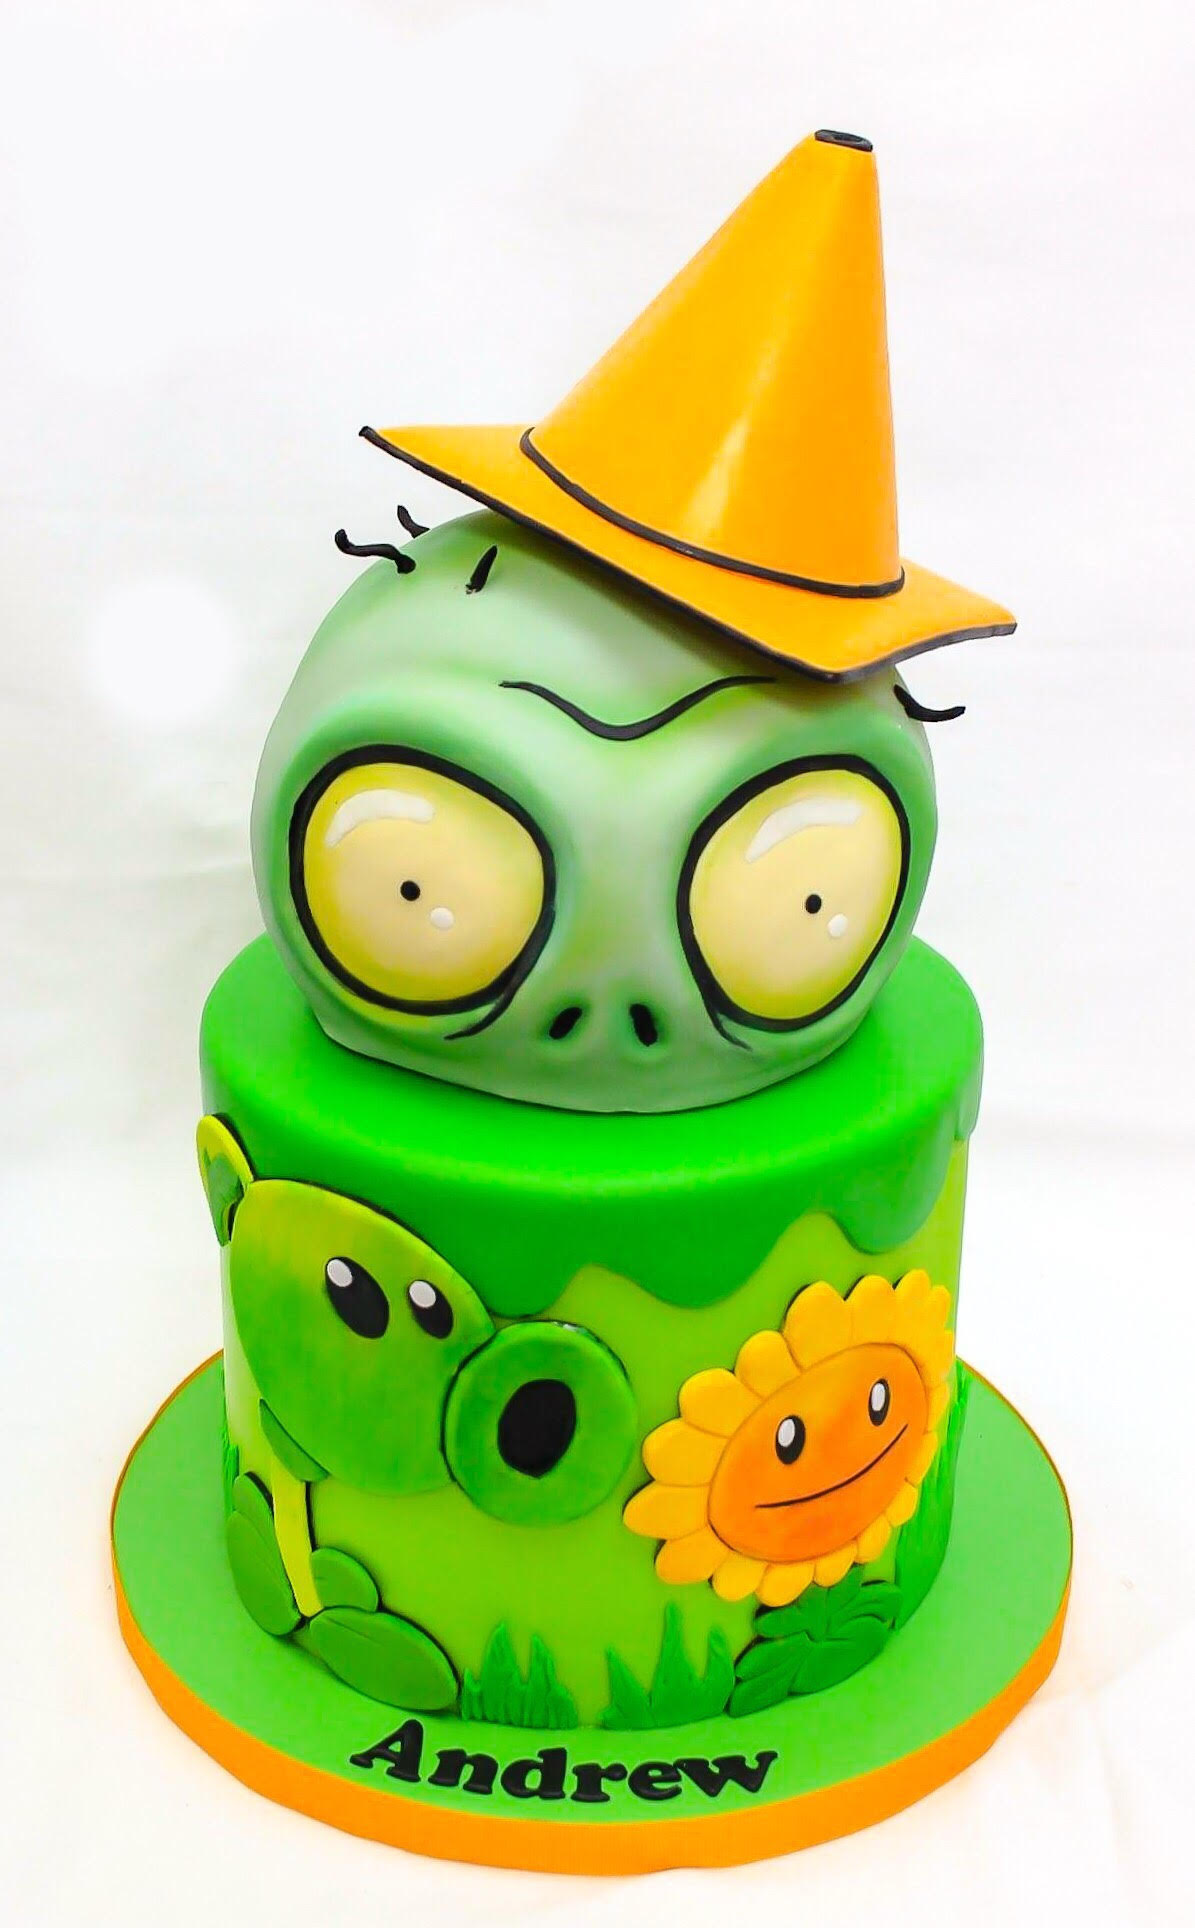 Green Angry Birds birthday